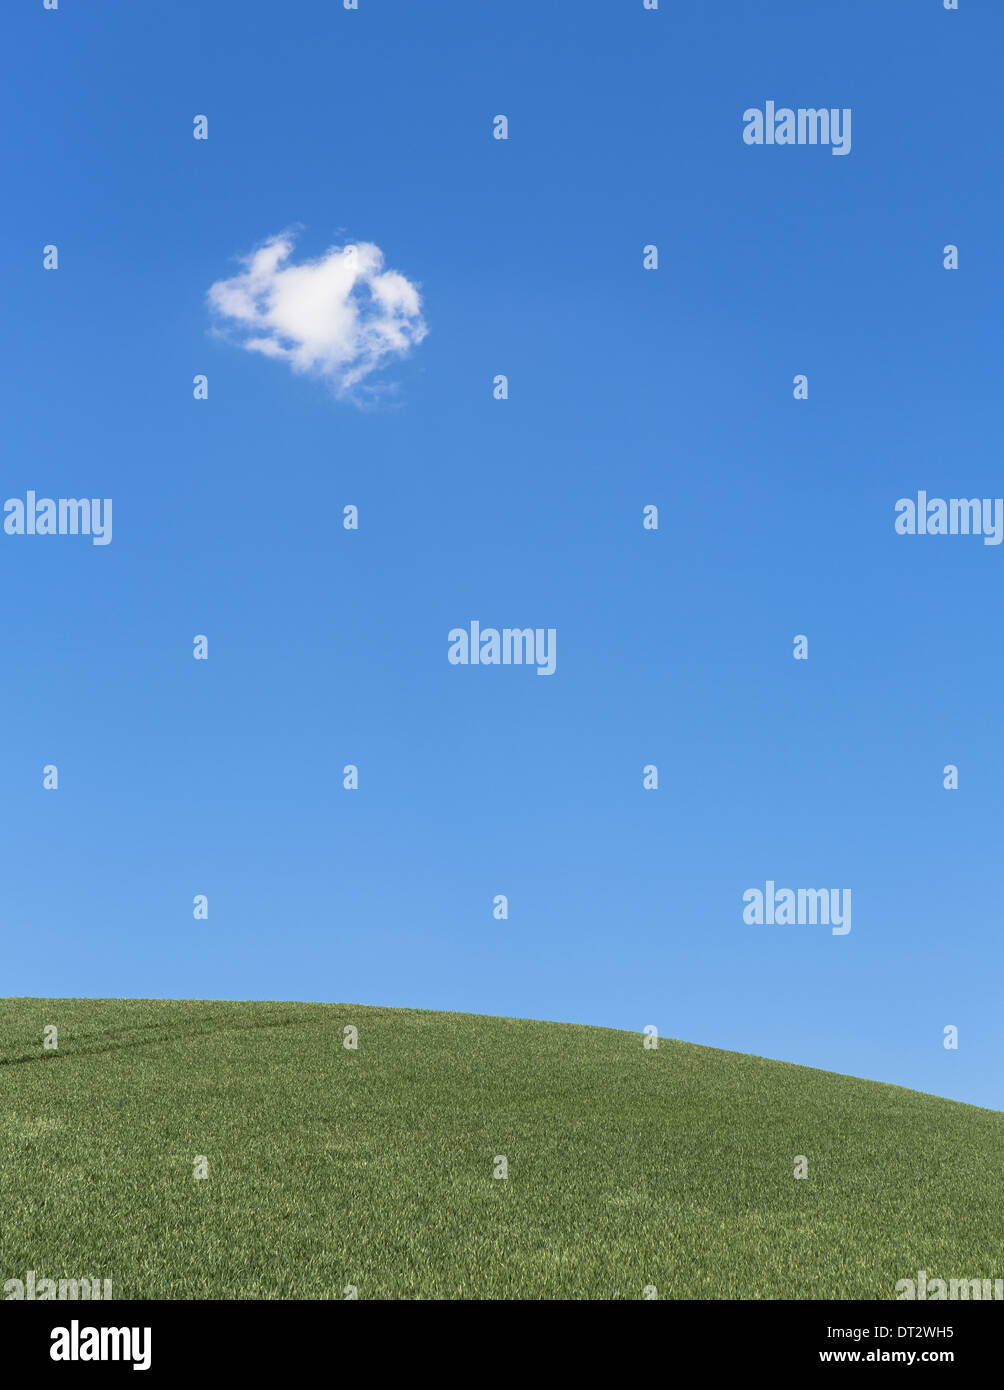 A delicate small cloud high in the sky over field of lush green wheat near Pullman - Stock Image